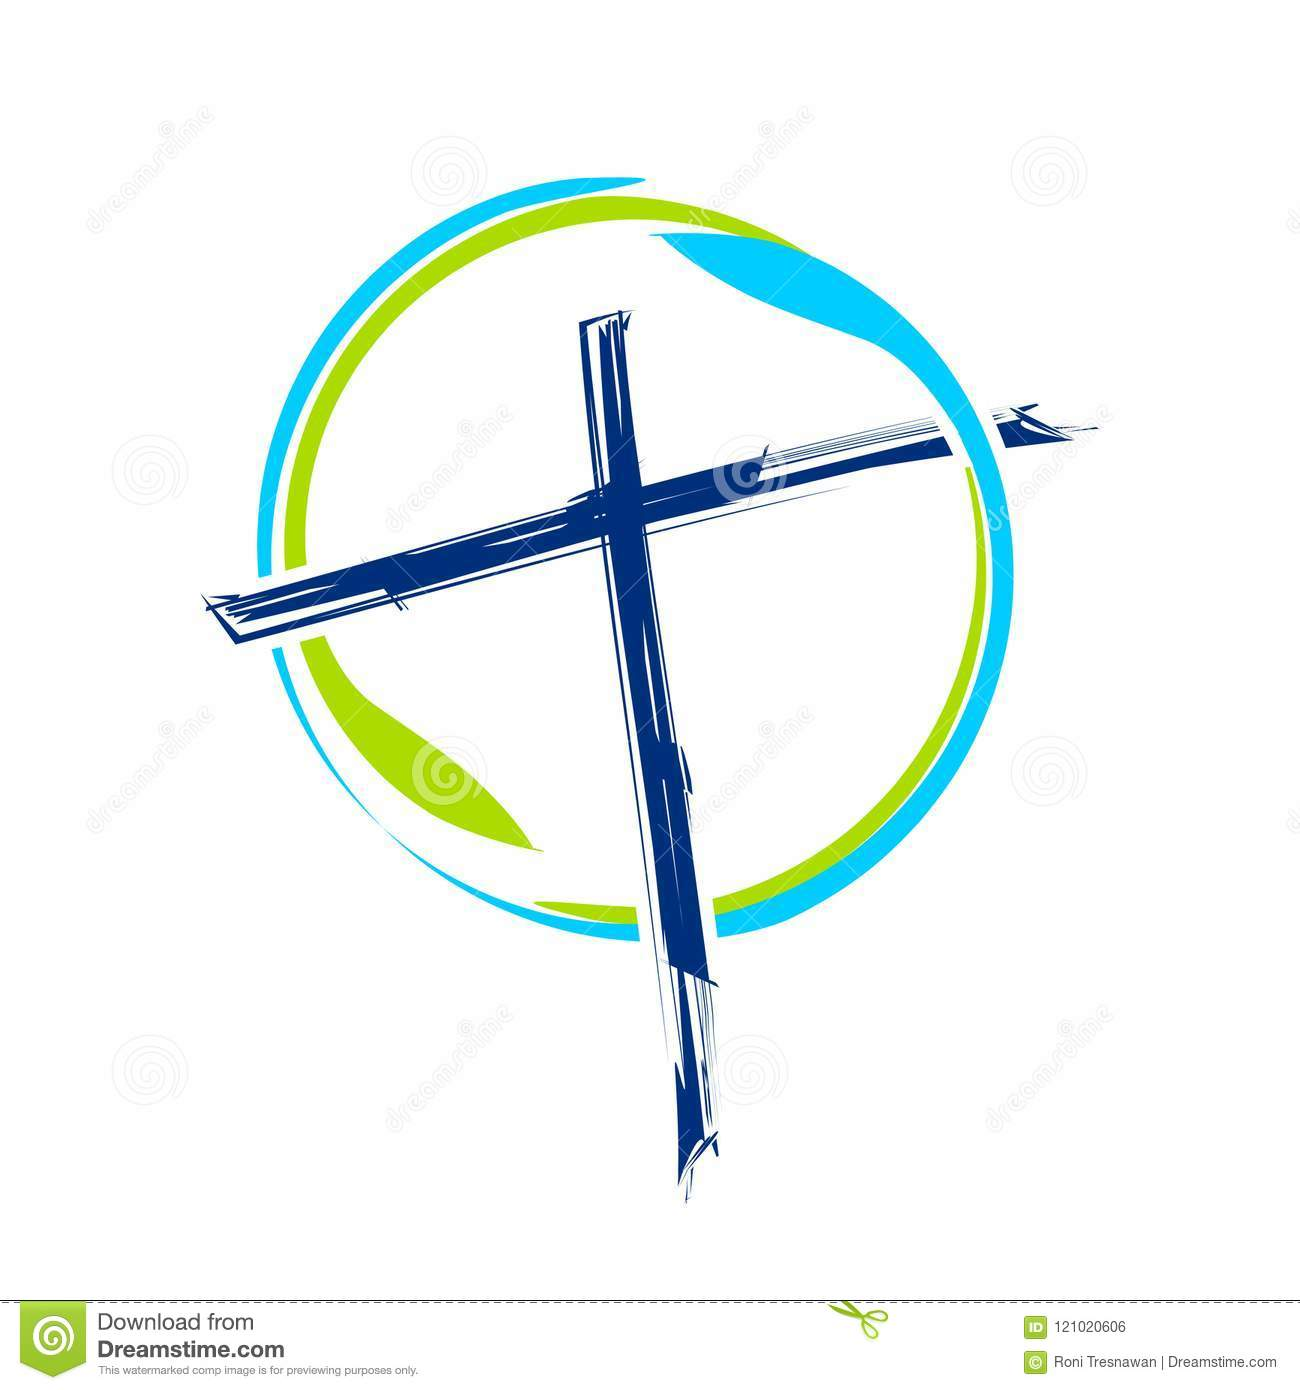 World Ministry Brush Abstract Cross Symbol Design Stock Vector